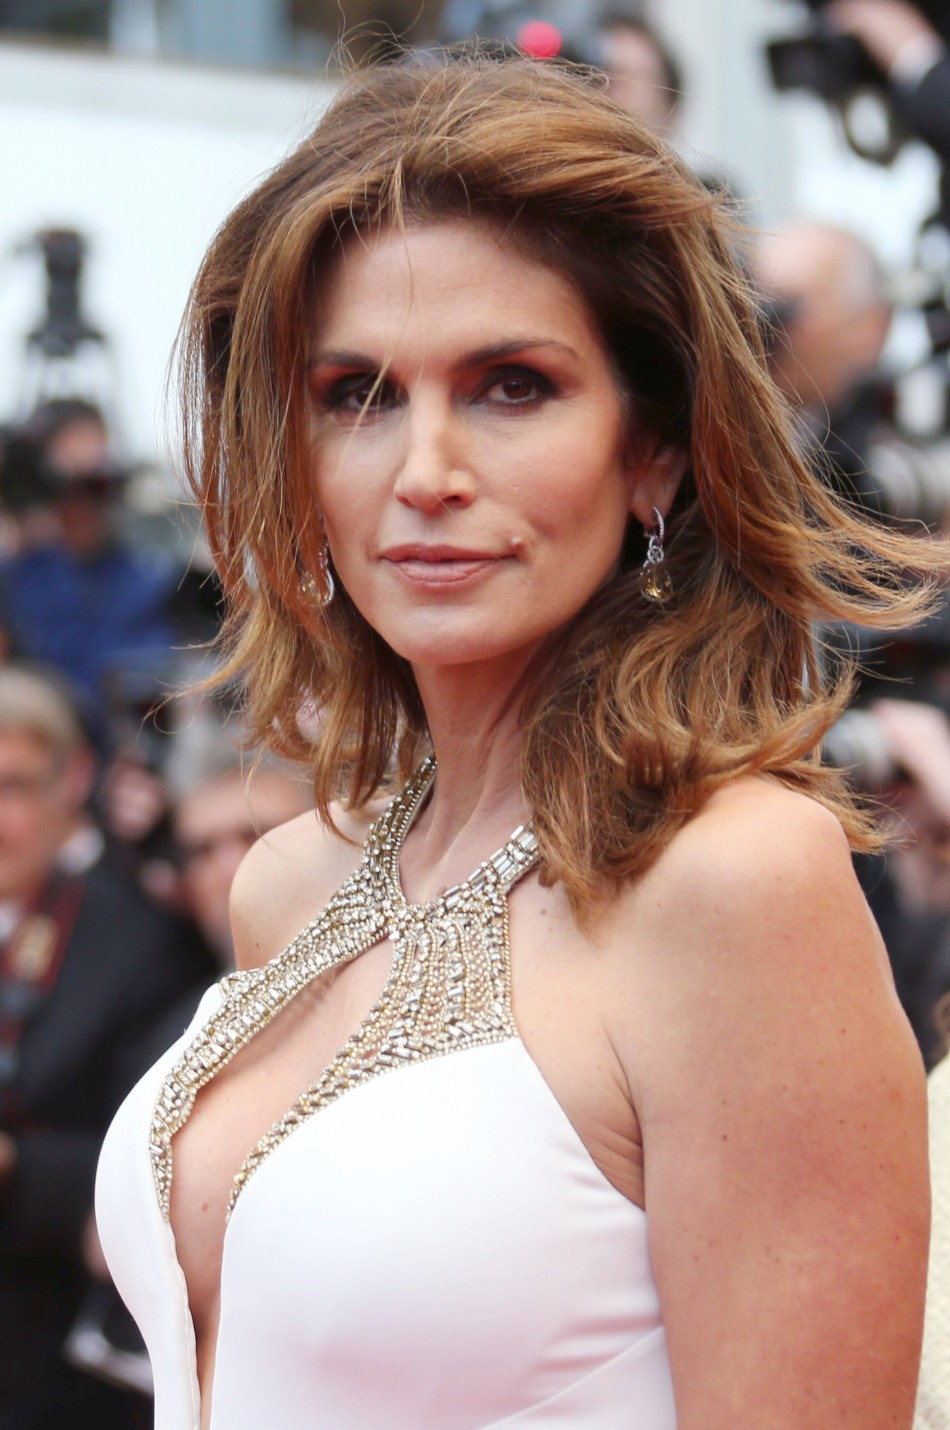 Model Cindy Crawford poses on the red carpet as she arrives for the screening of the film 'The Great Gatsby' and for the opening ceremony of the 66th Cannes Film Festival in Cannes